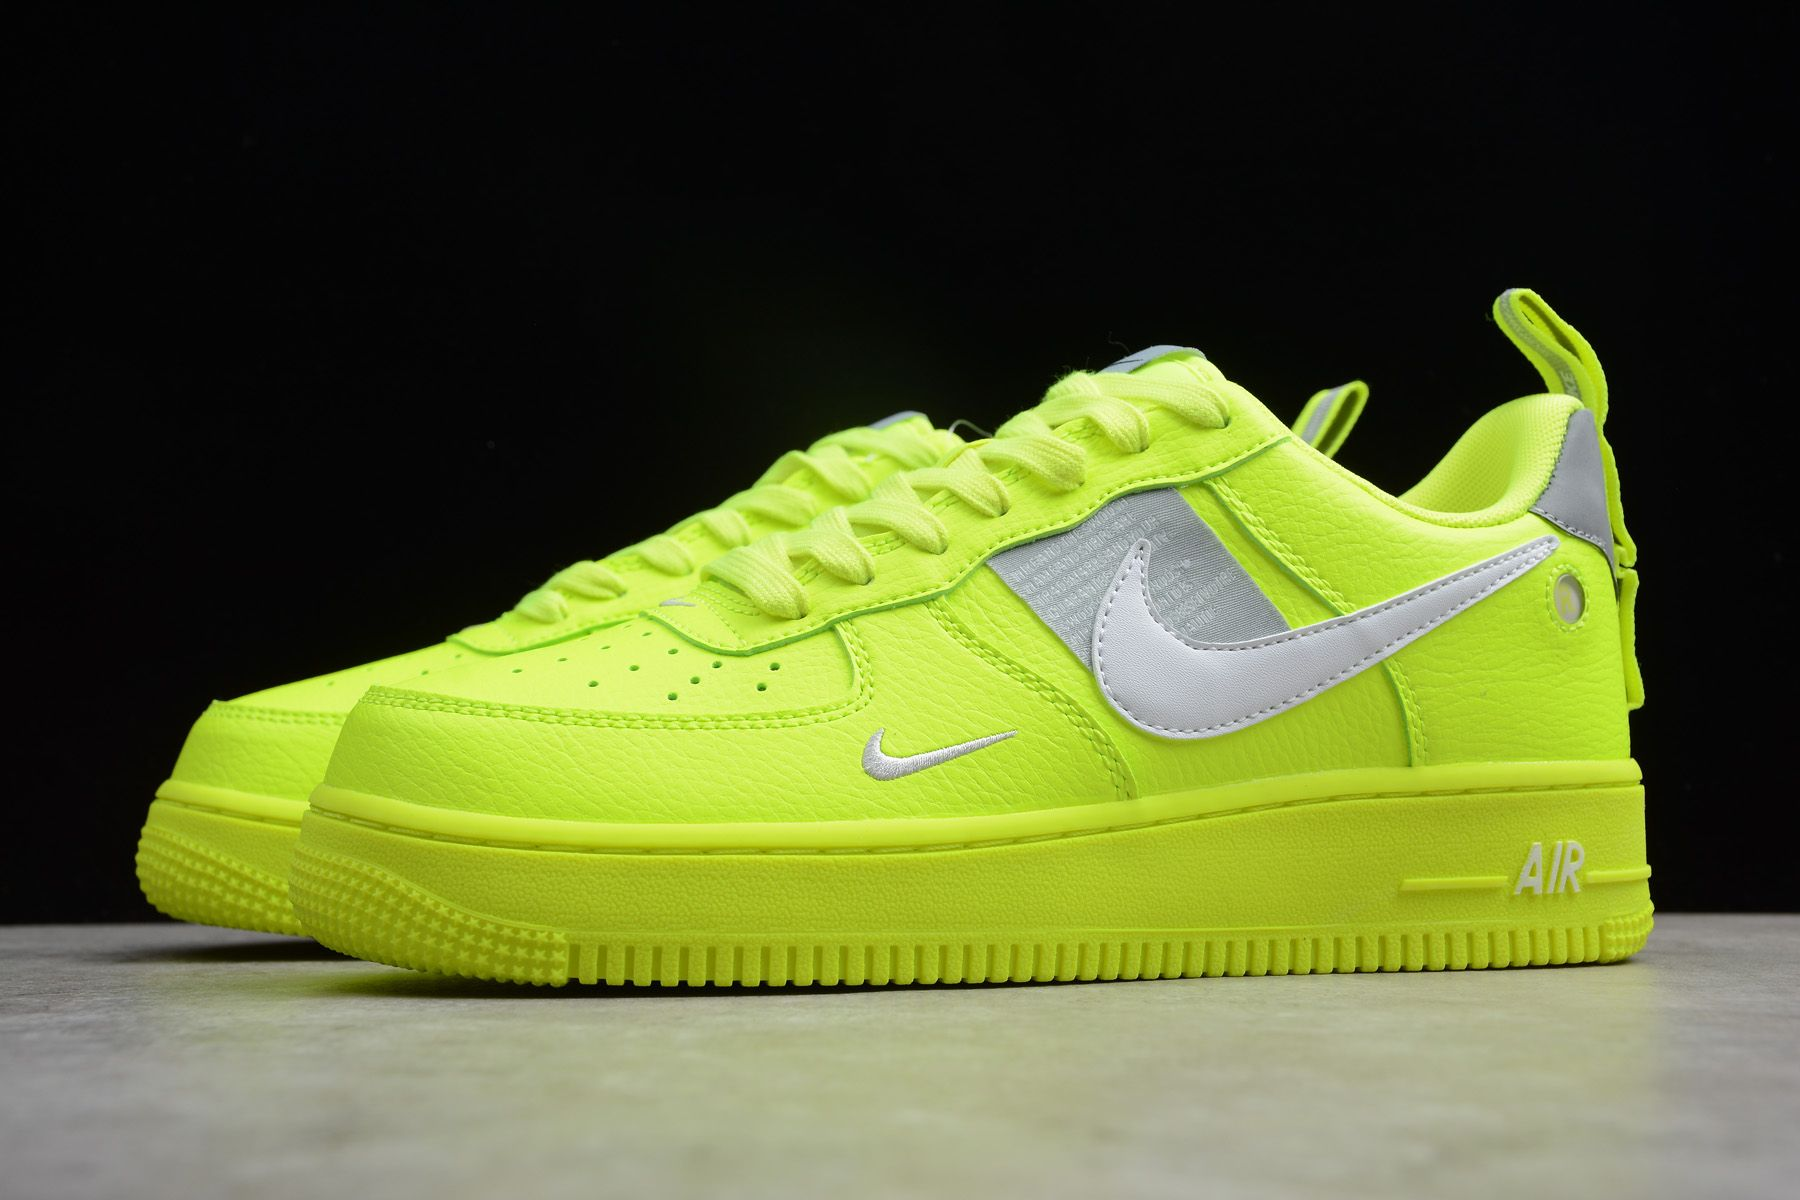 Nike Air Force 1 '07 LV8 Utility Volt AJ7747 700 in 2020